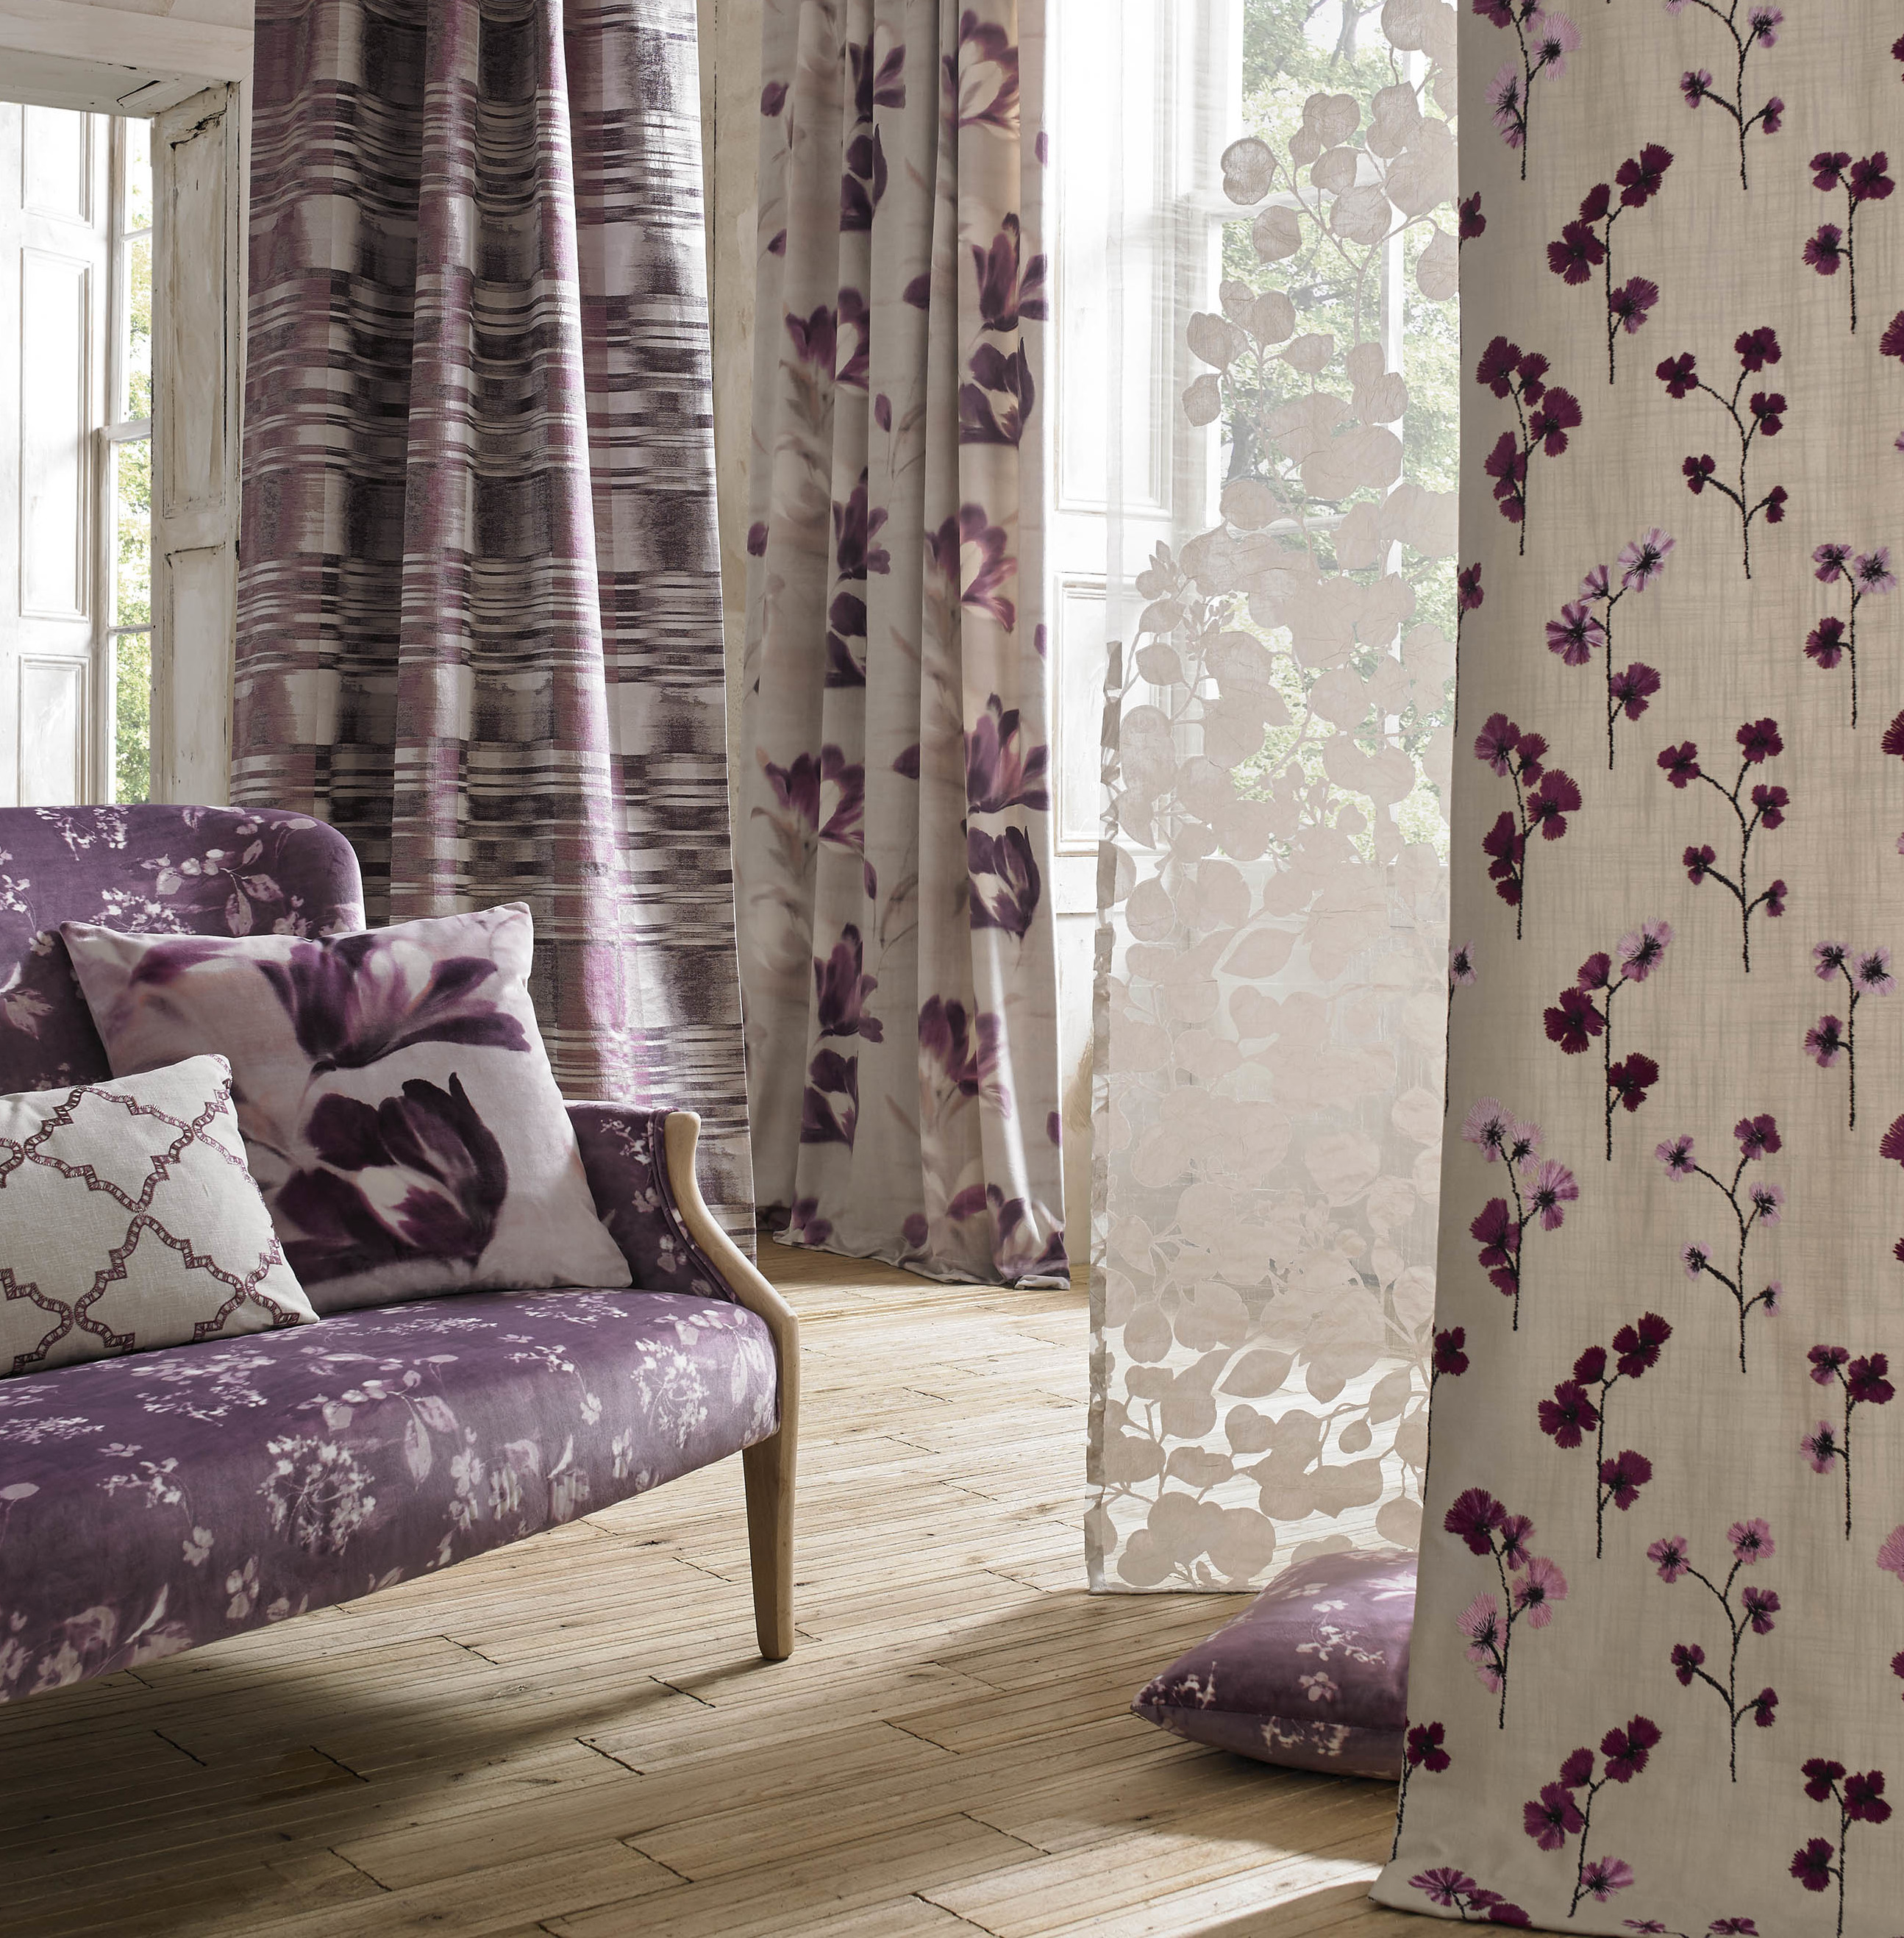 Renoir Kai Fabrics Ashley Wilde Charles Parsons Interiors Upholstery Curtains Cushions